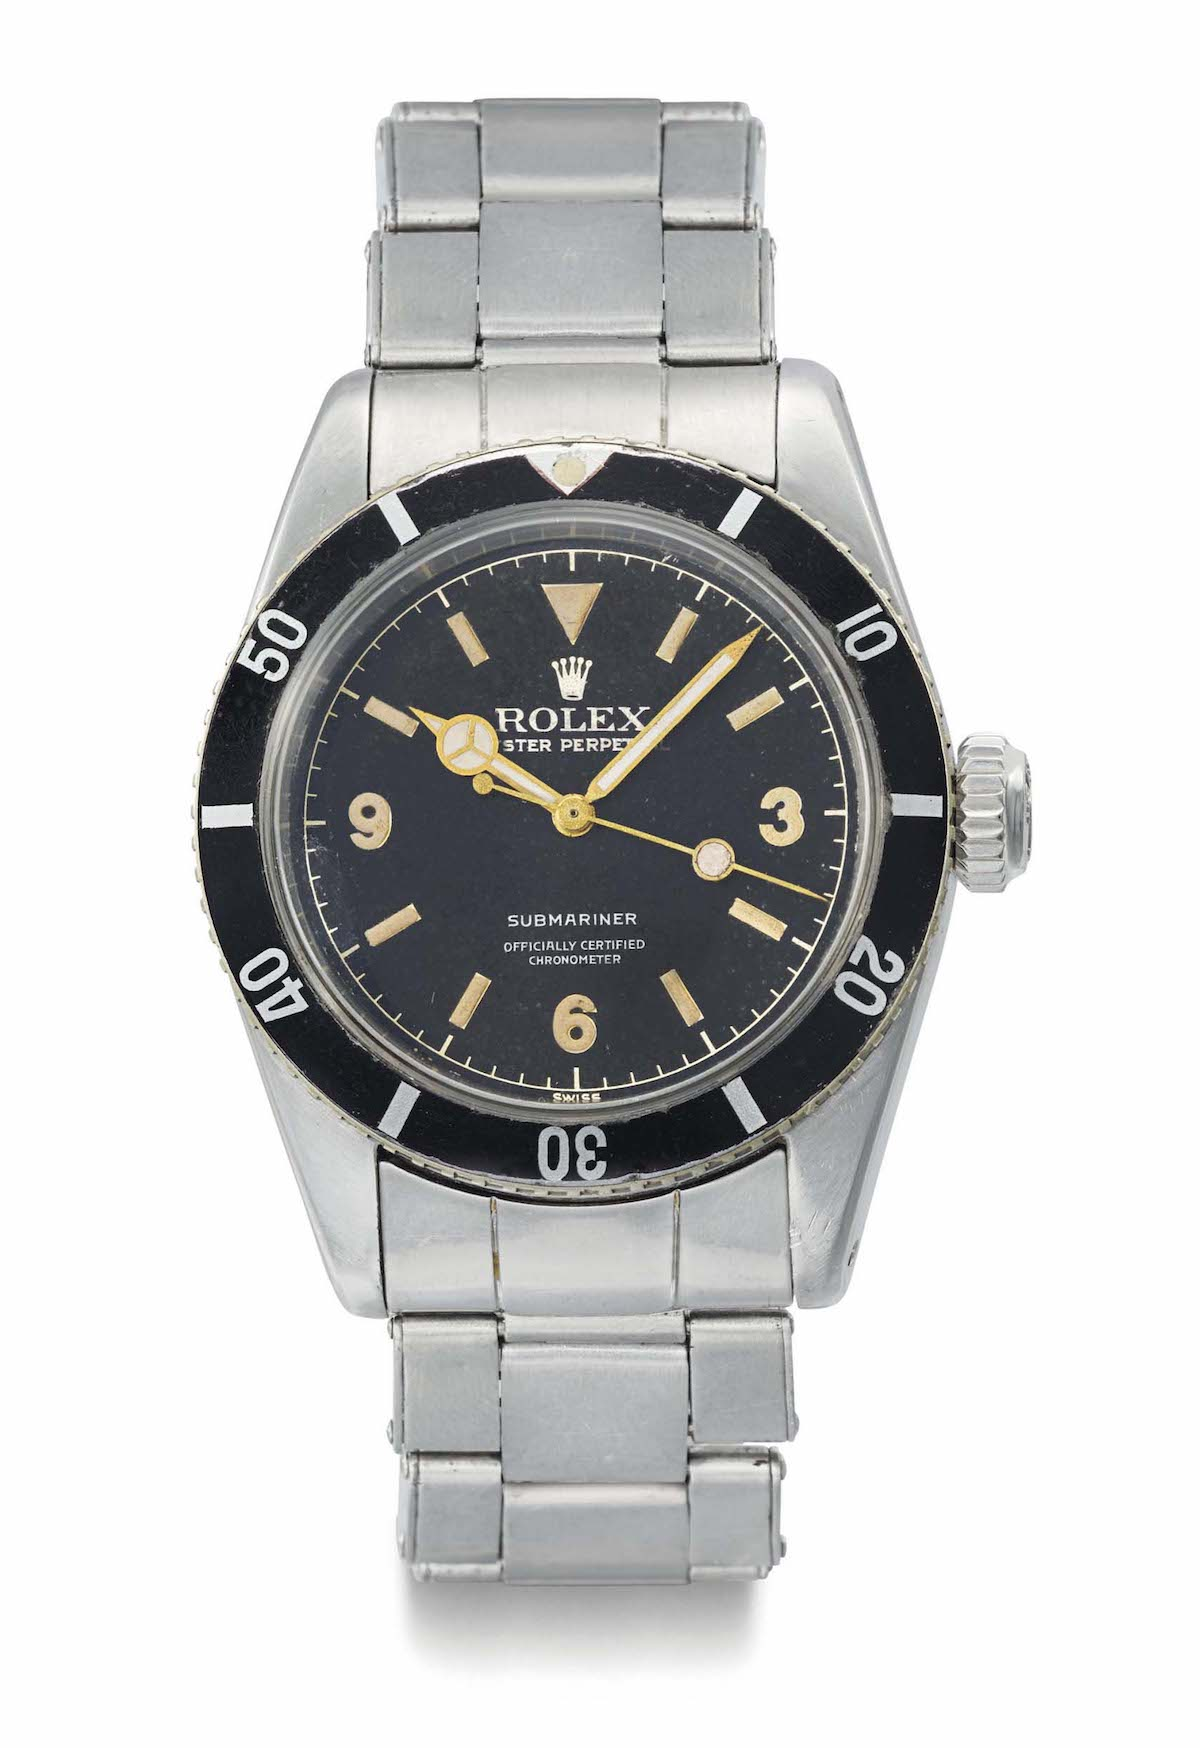 Rolex Submariner 6200 Explorer Dial - 2